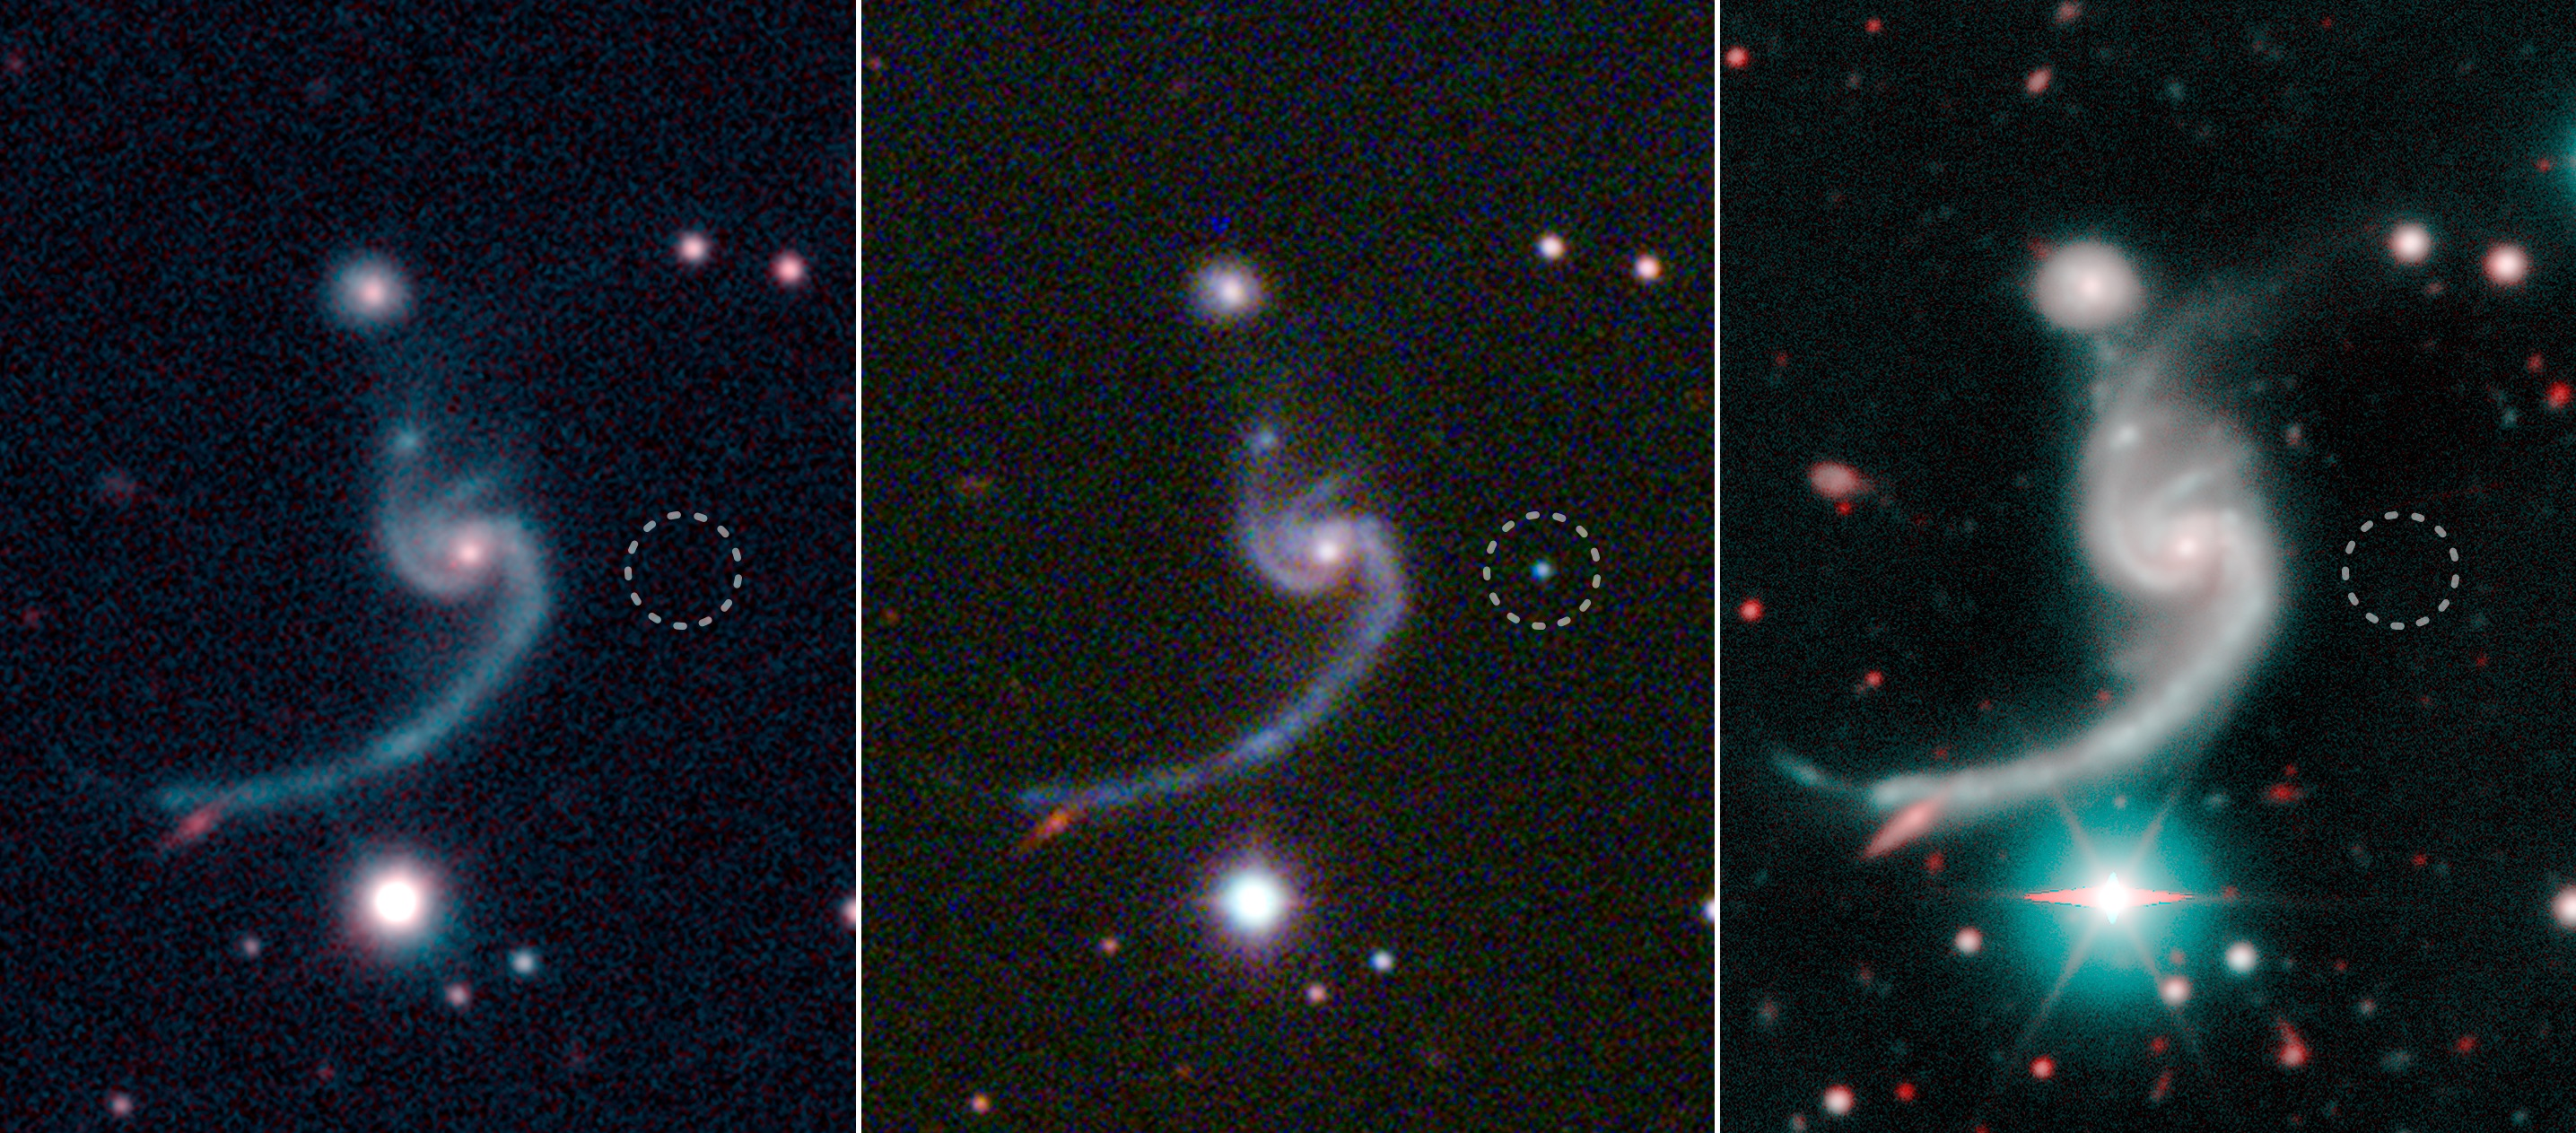 Solving the mystery of the wimpy supernova